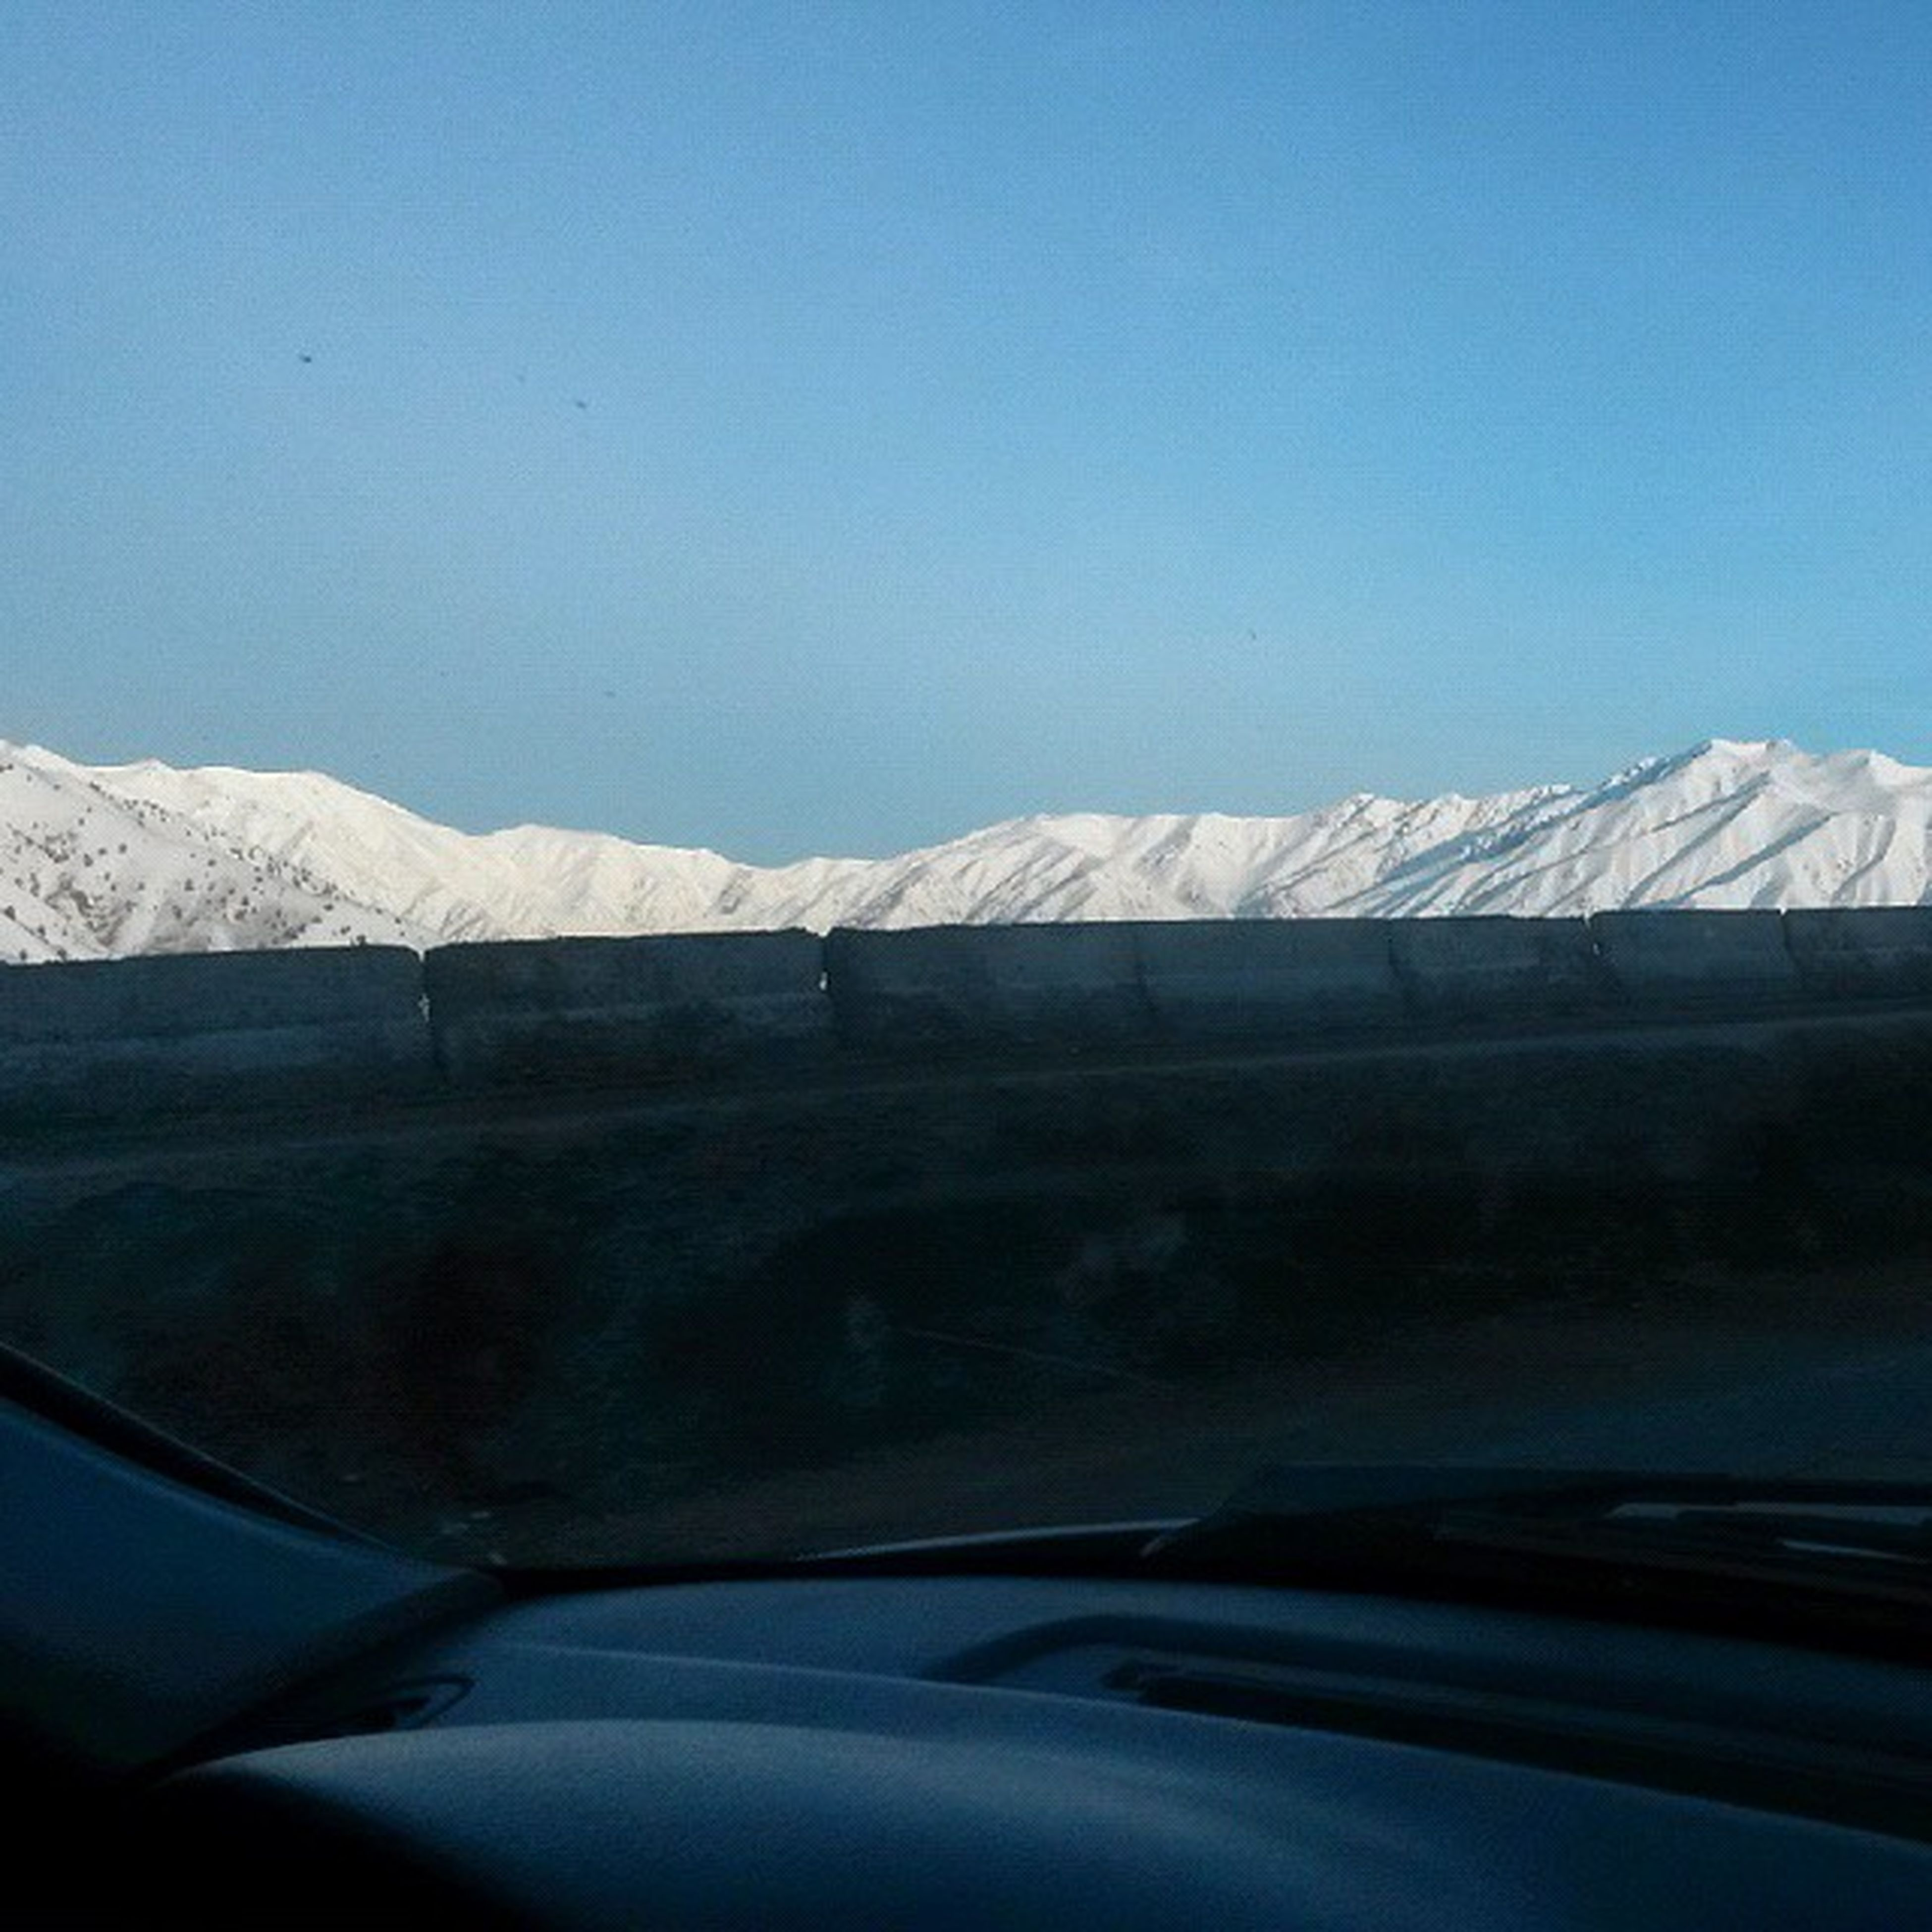 transportation, snow, winter, clear sky, mode of transport, cold temperature, blue, mountain, car, road, copy space, vehicle interior, land vehicle, windshield, glass - material, season, transparent, snowcapped mountain, travel, part of